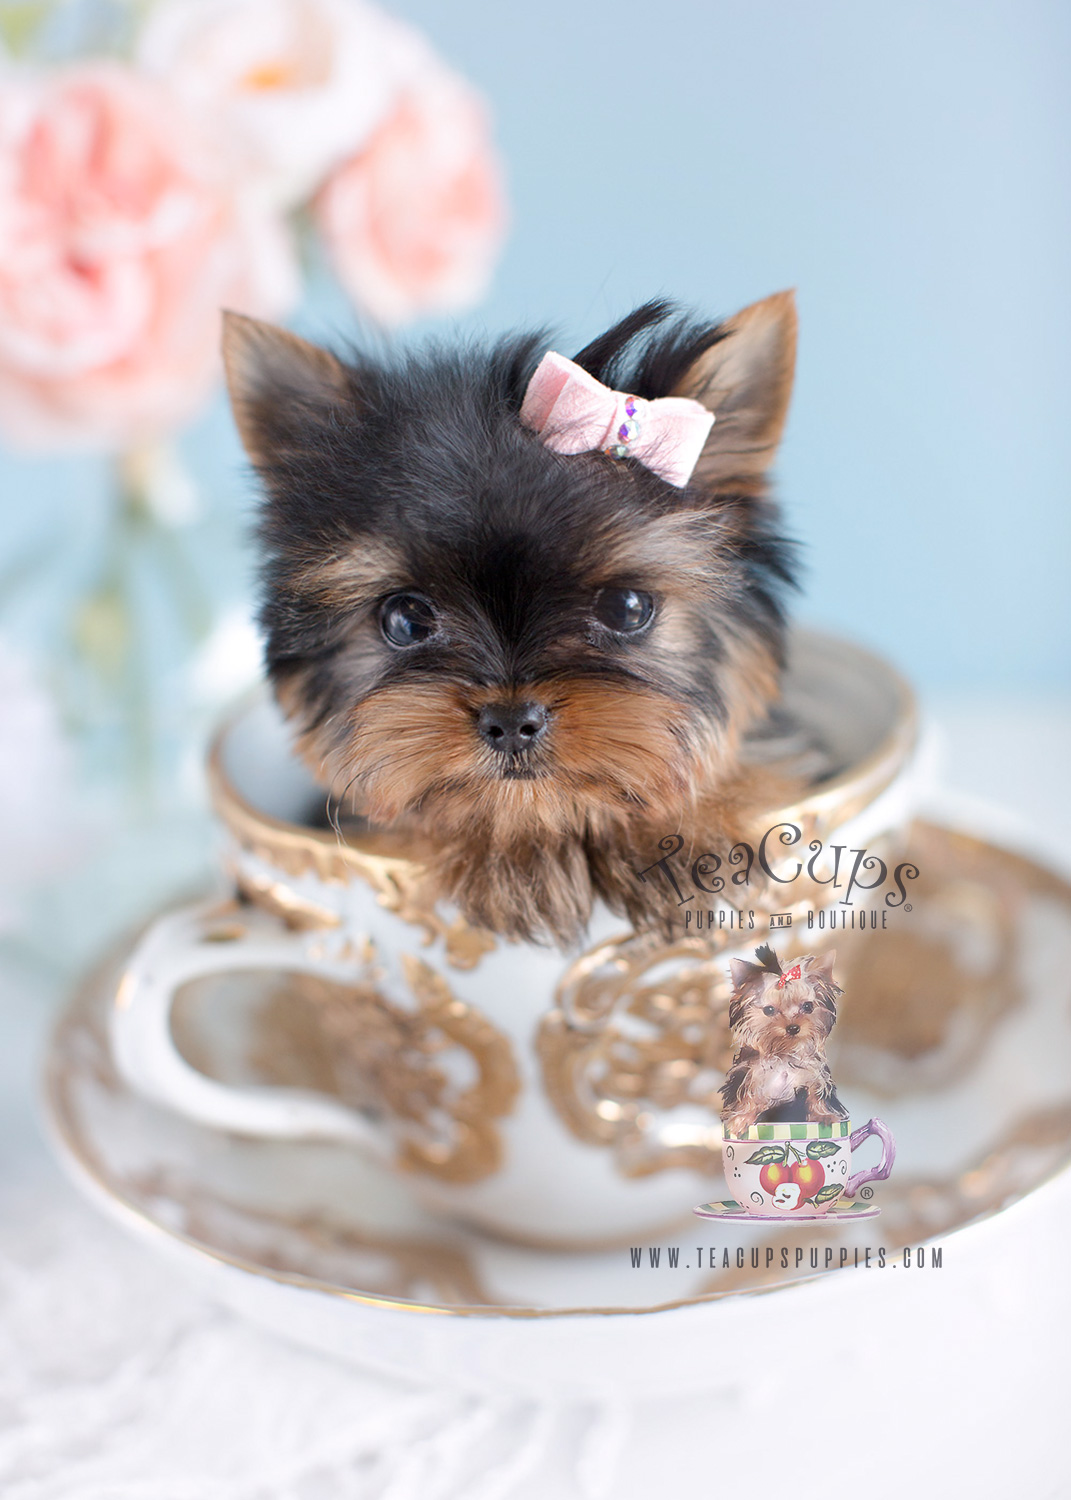 Cute Little Yorkie Puppies South Florida | Teacups, Puppies